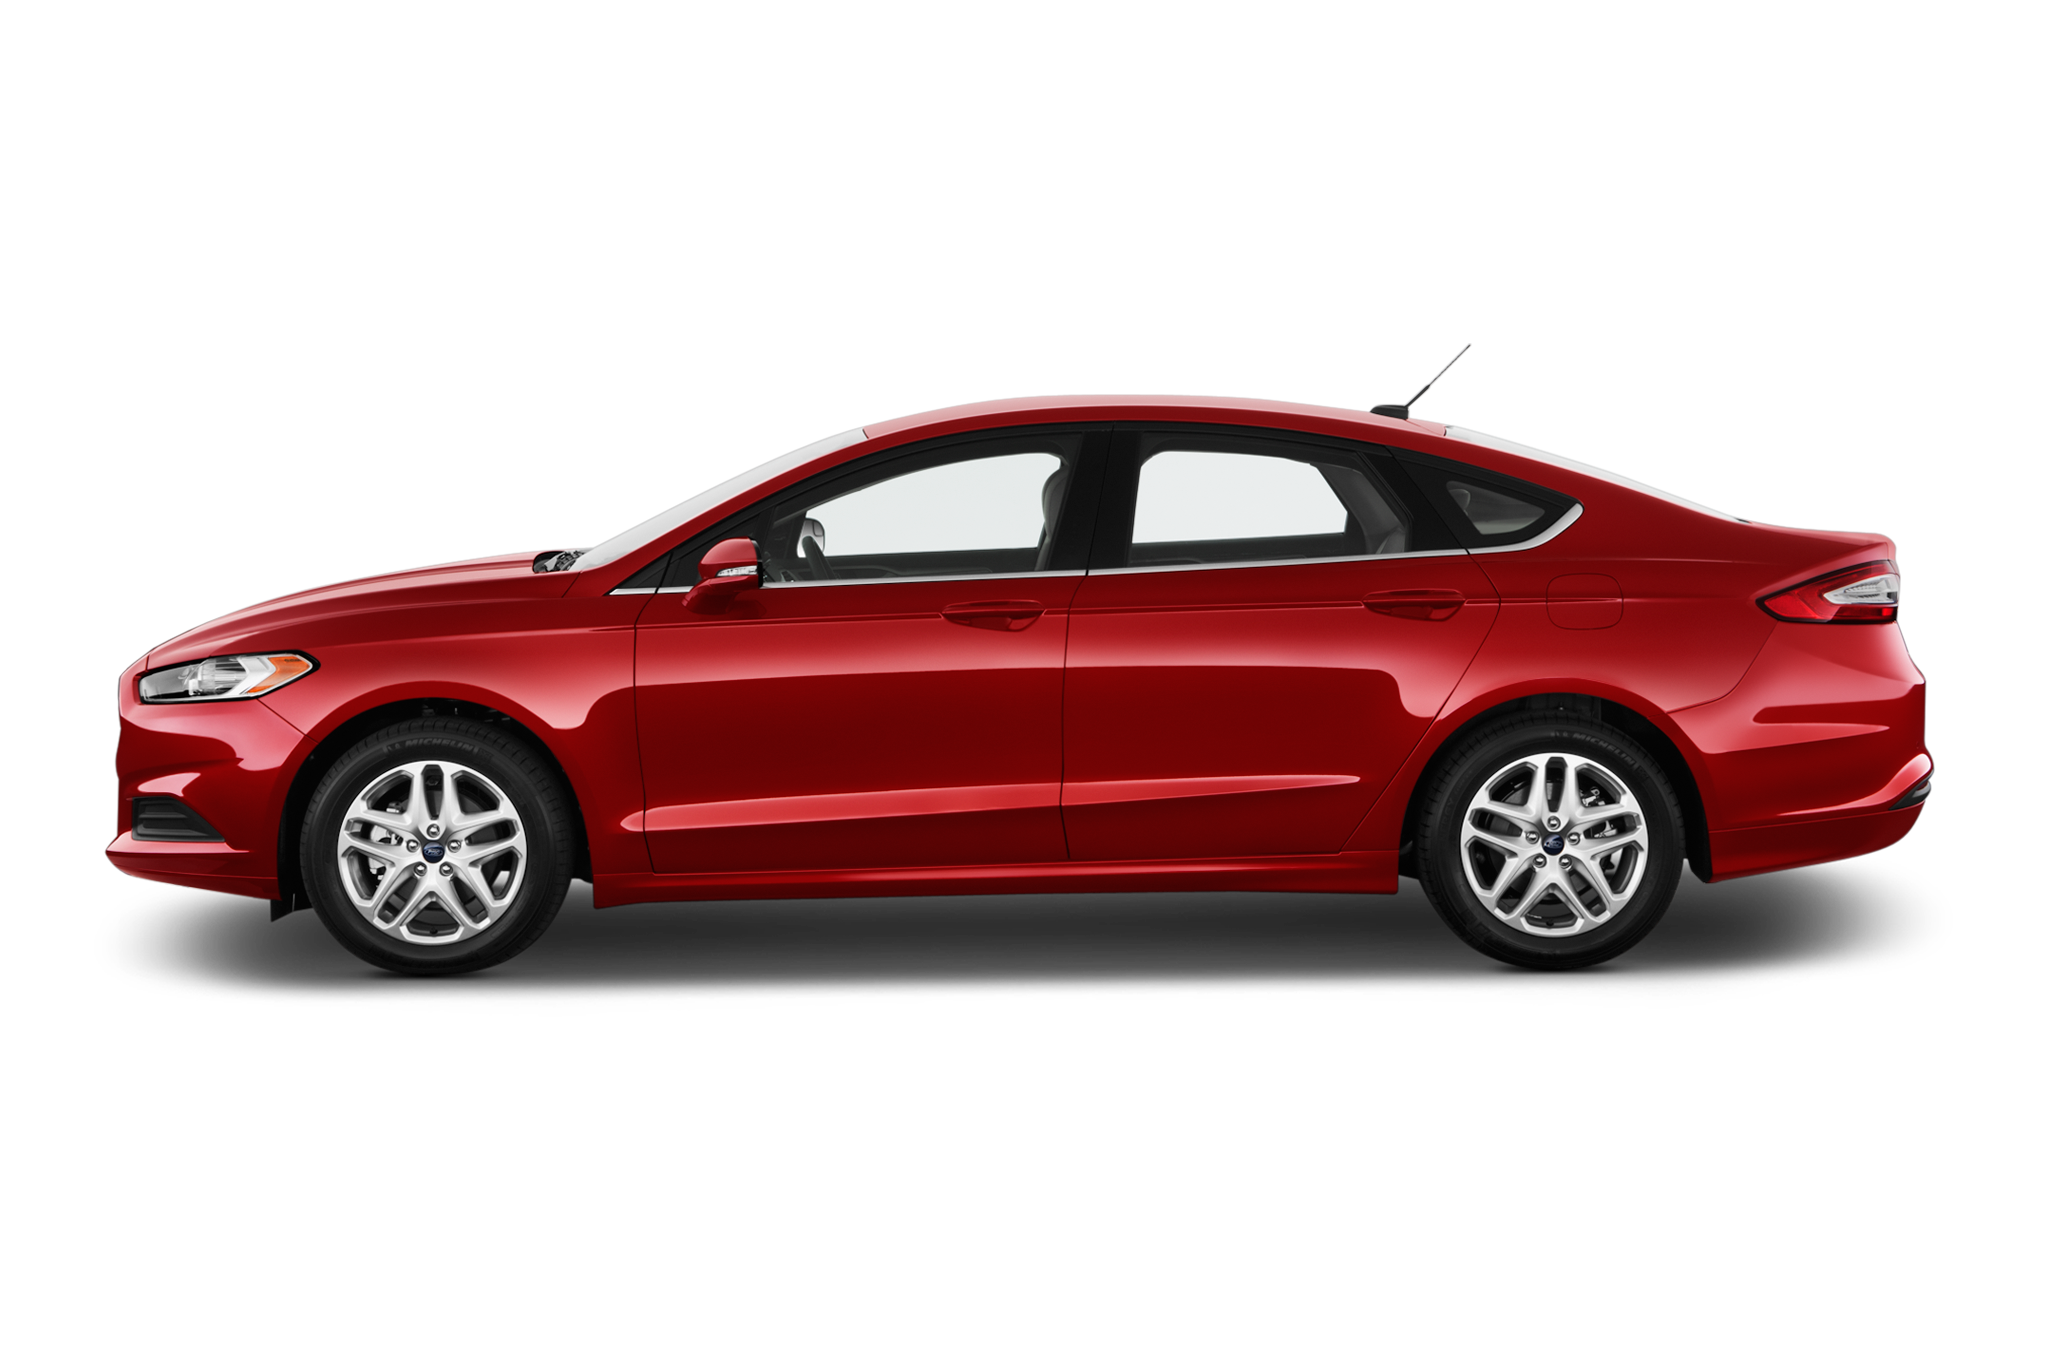 2015 Ford Fusion Drops 1.6L EcoBoost Engine, Manual ...